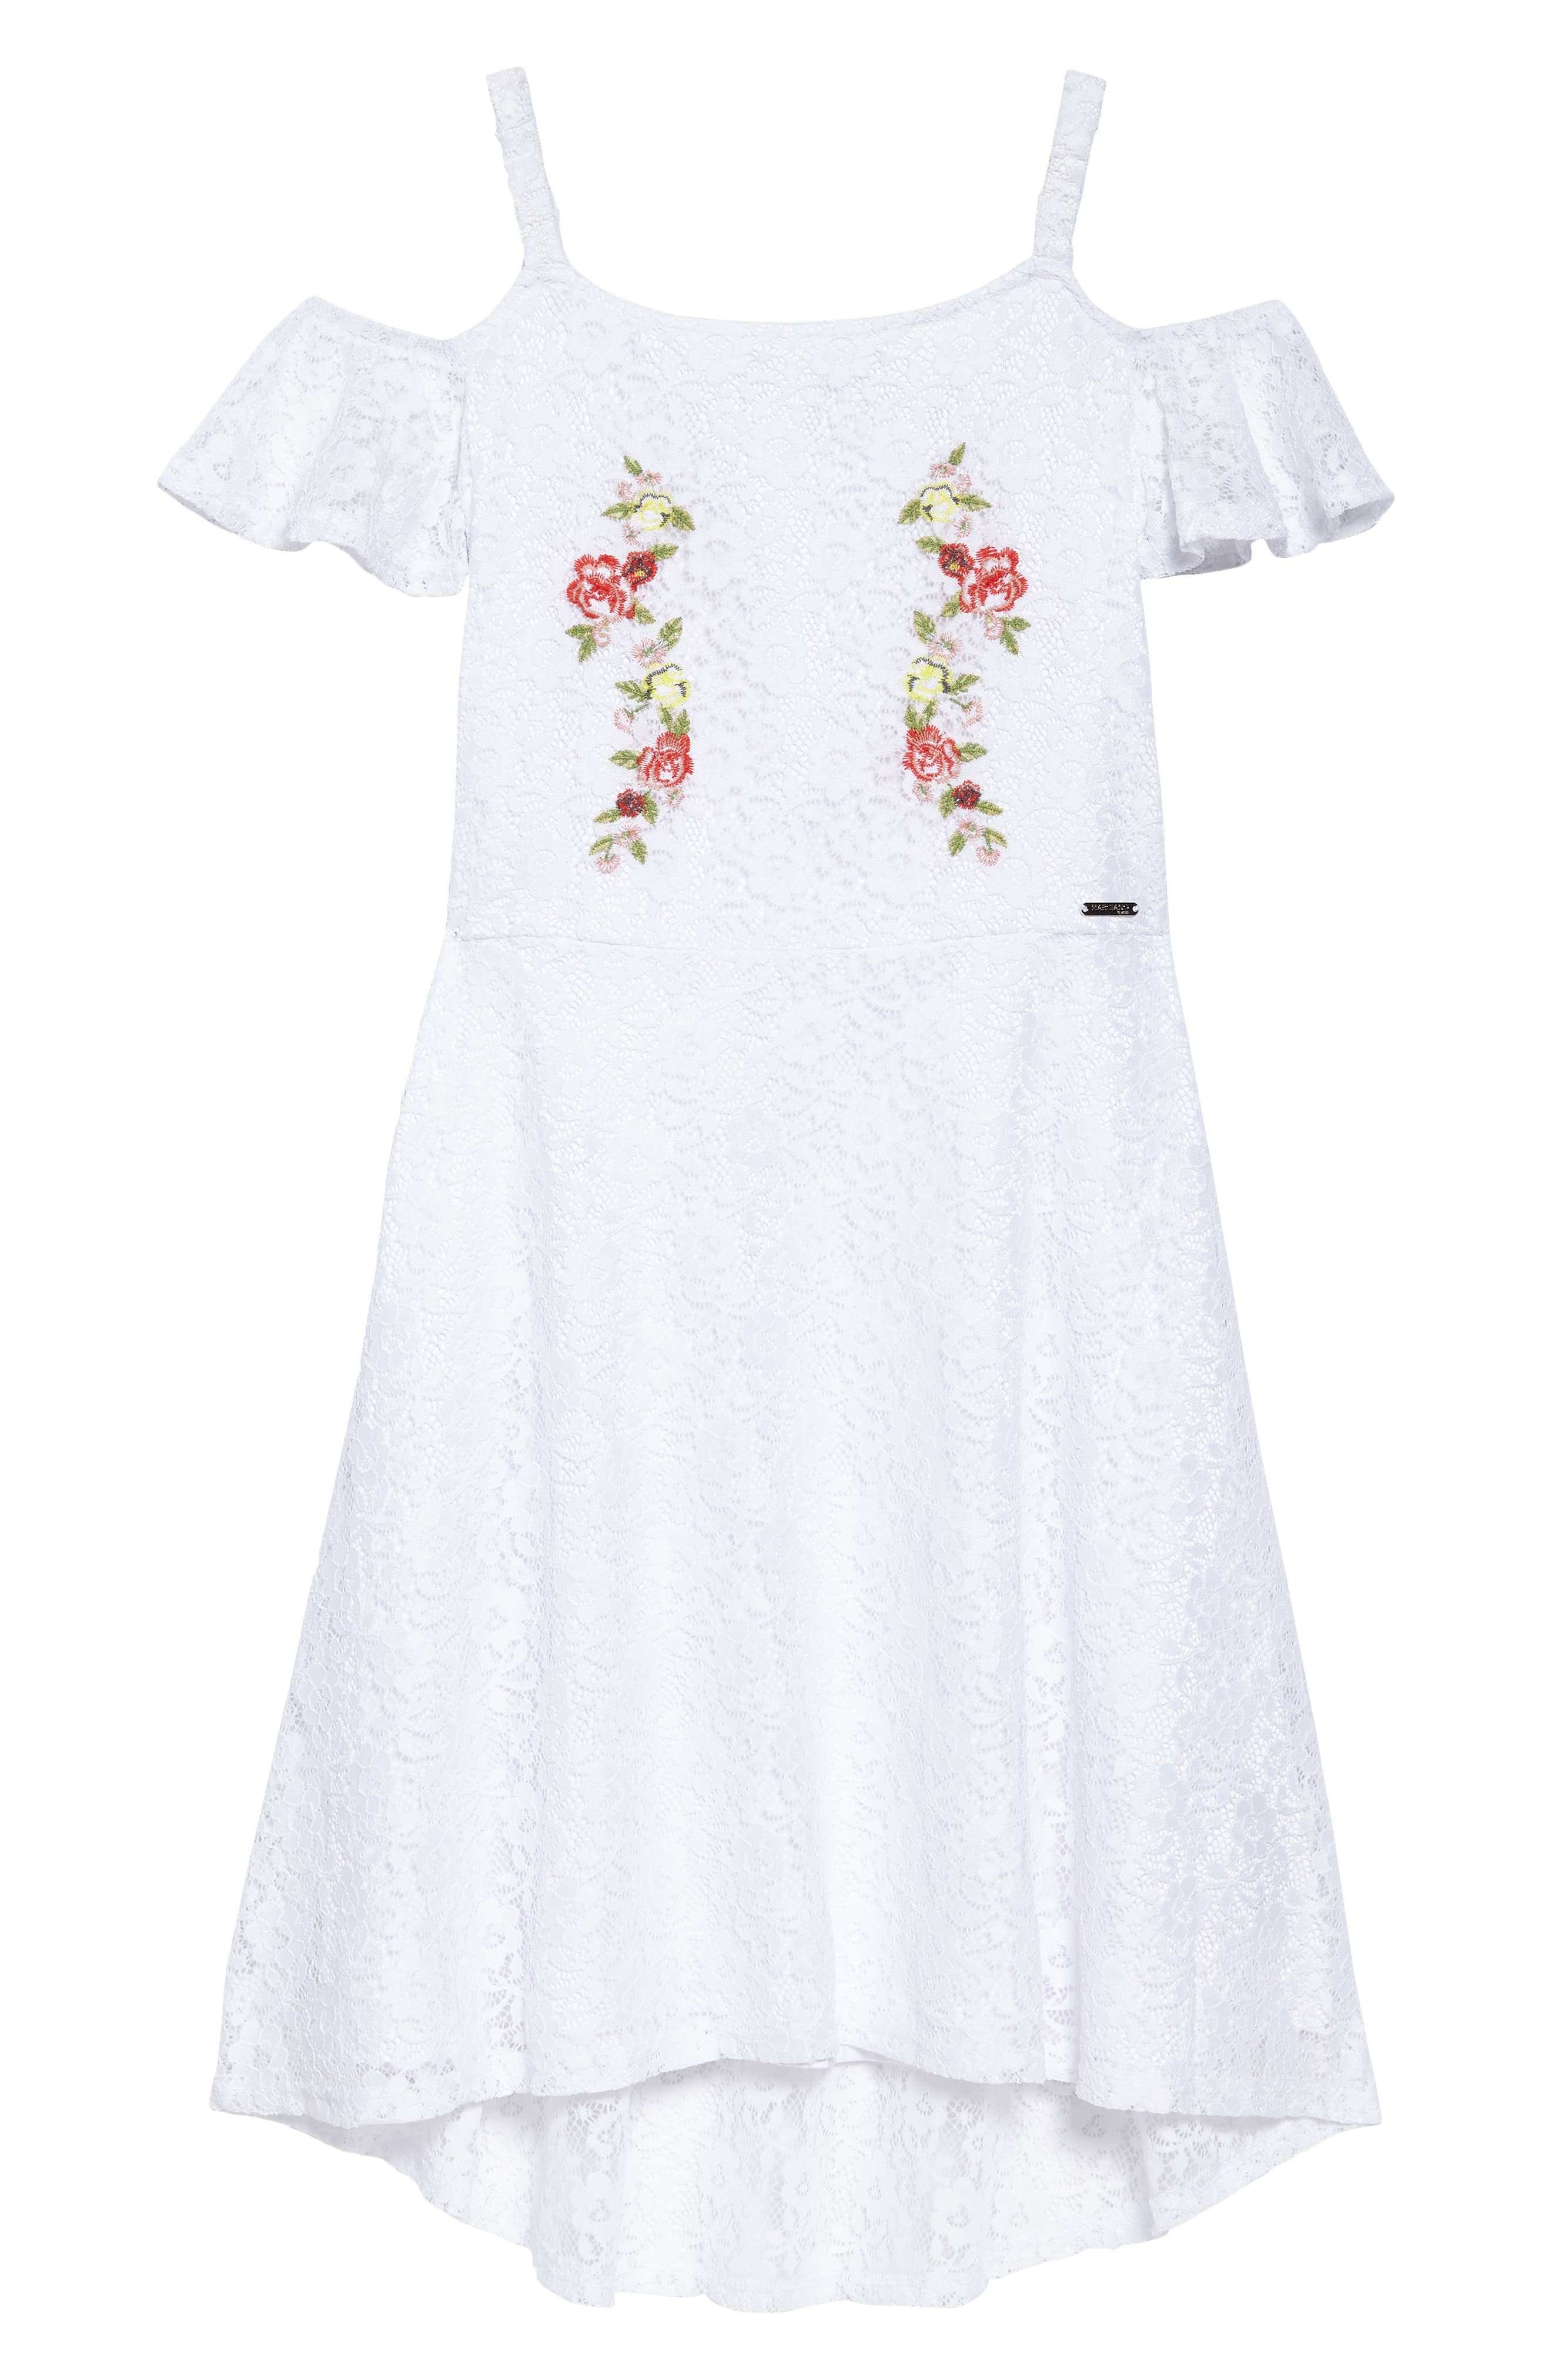 Alternate Image 1 Selected - Marciano Embroidered Lace Cold Shoulder Dress (Big Girls)